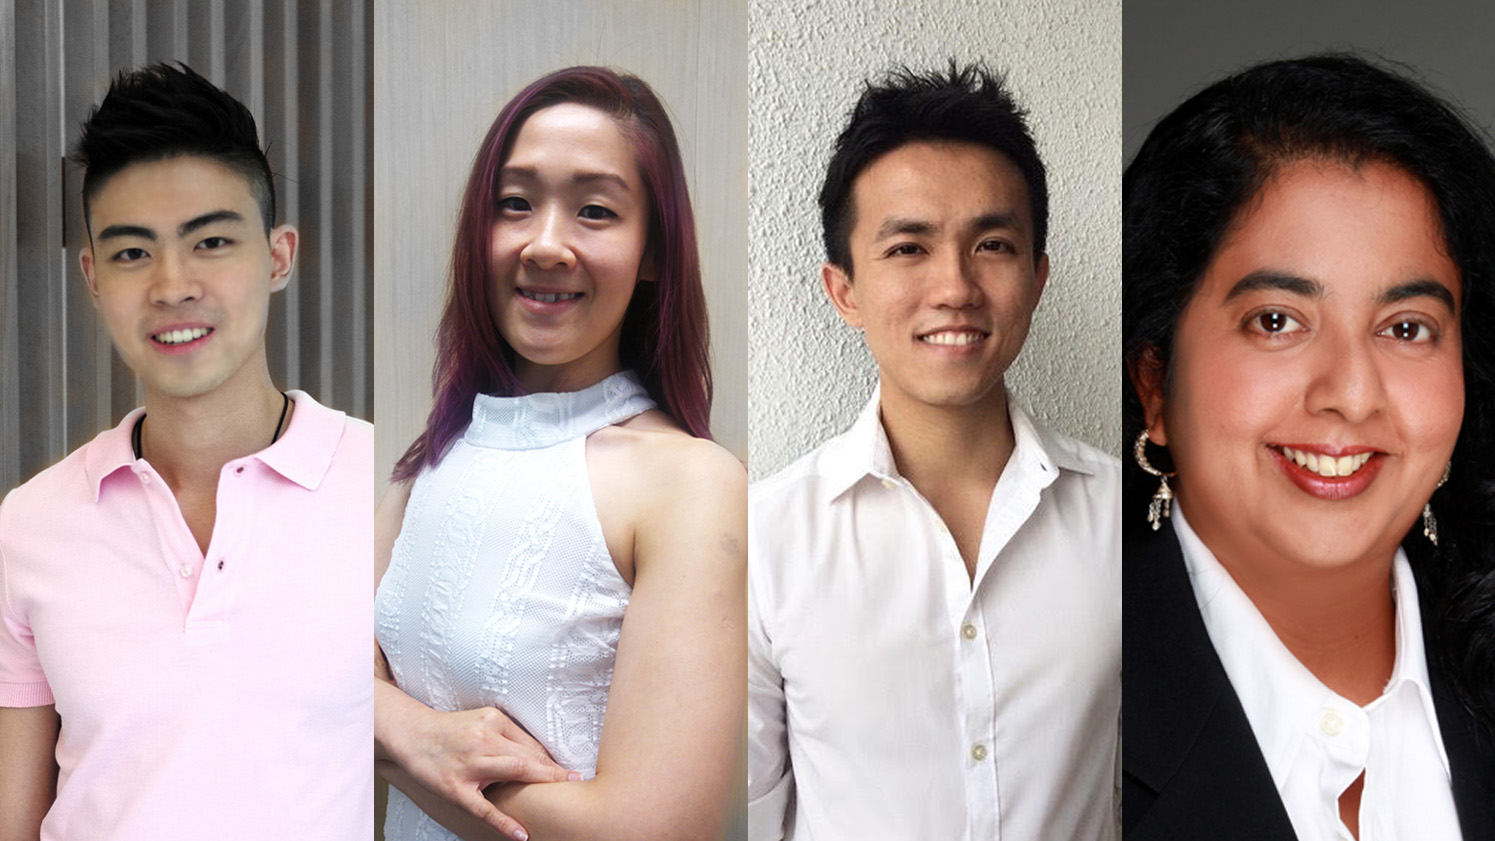 4 Singapore-based data scientists share how data has been impacting lives